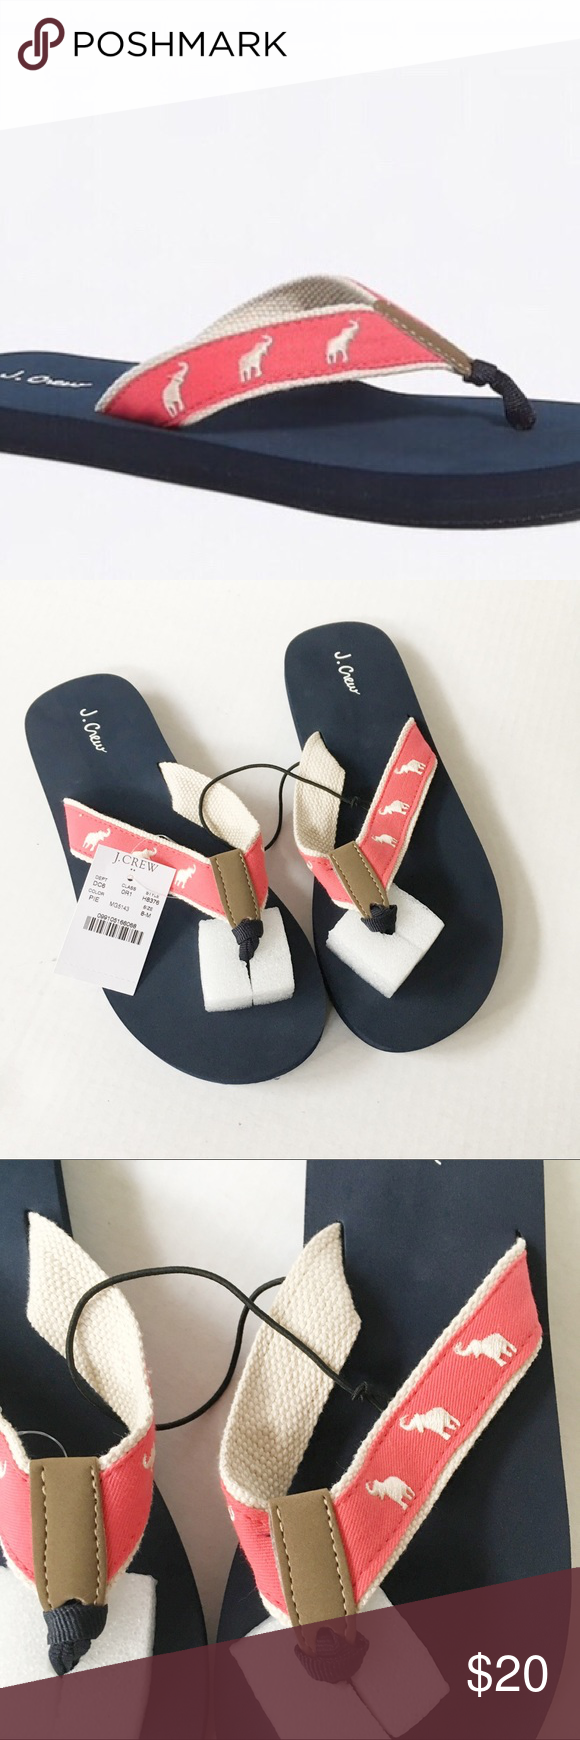 4fccab9bf332ce NEW J Crew Factory Embroidered Elephant flip flops New with tag. J Crew  Factory Embroidered